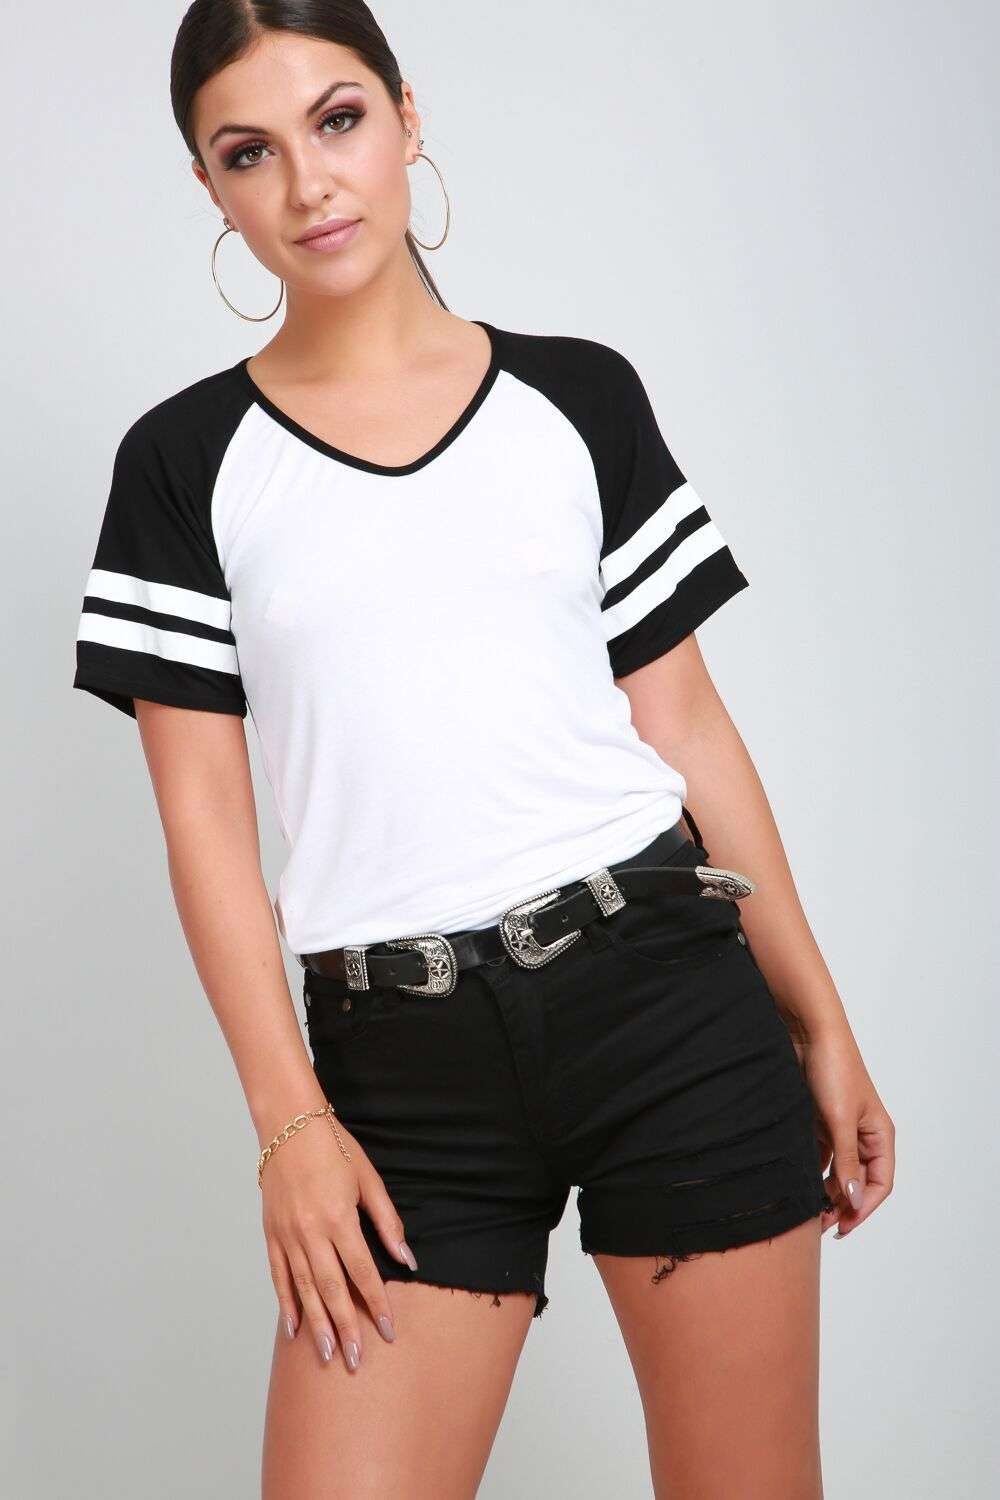 Kayleigh Jersey Striped Sleeve Contrast Tshirt - bejealous-com